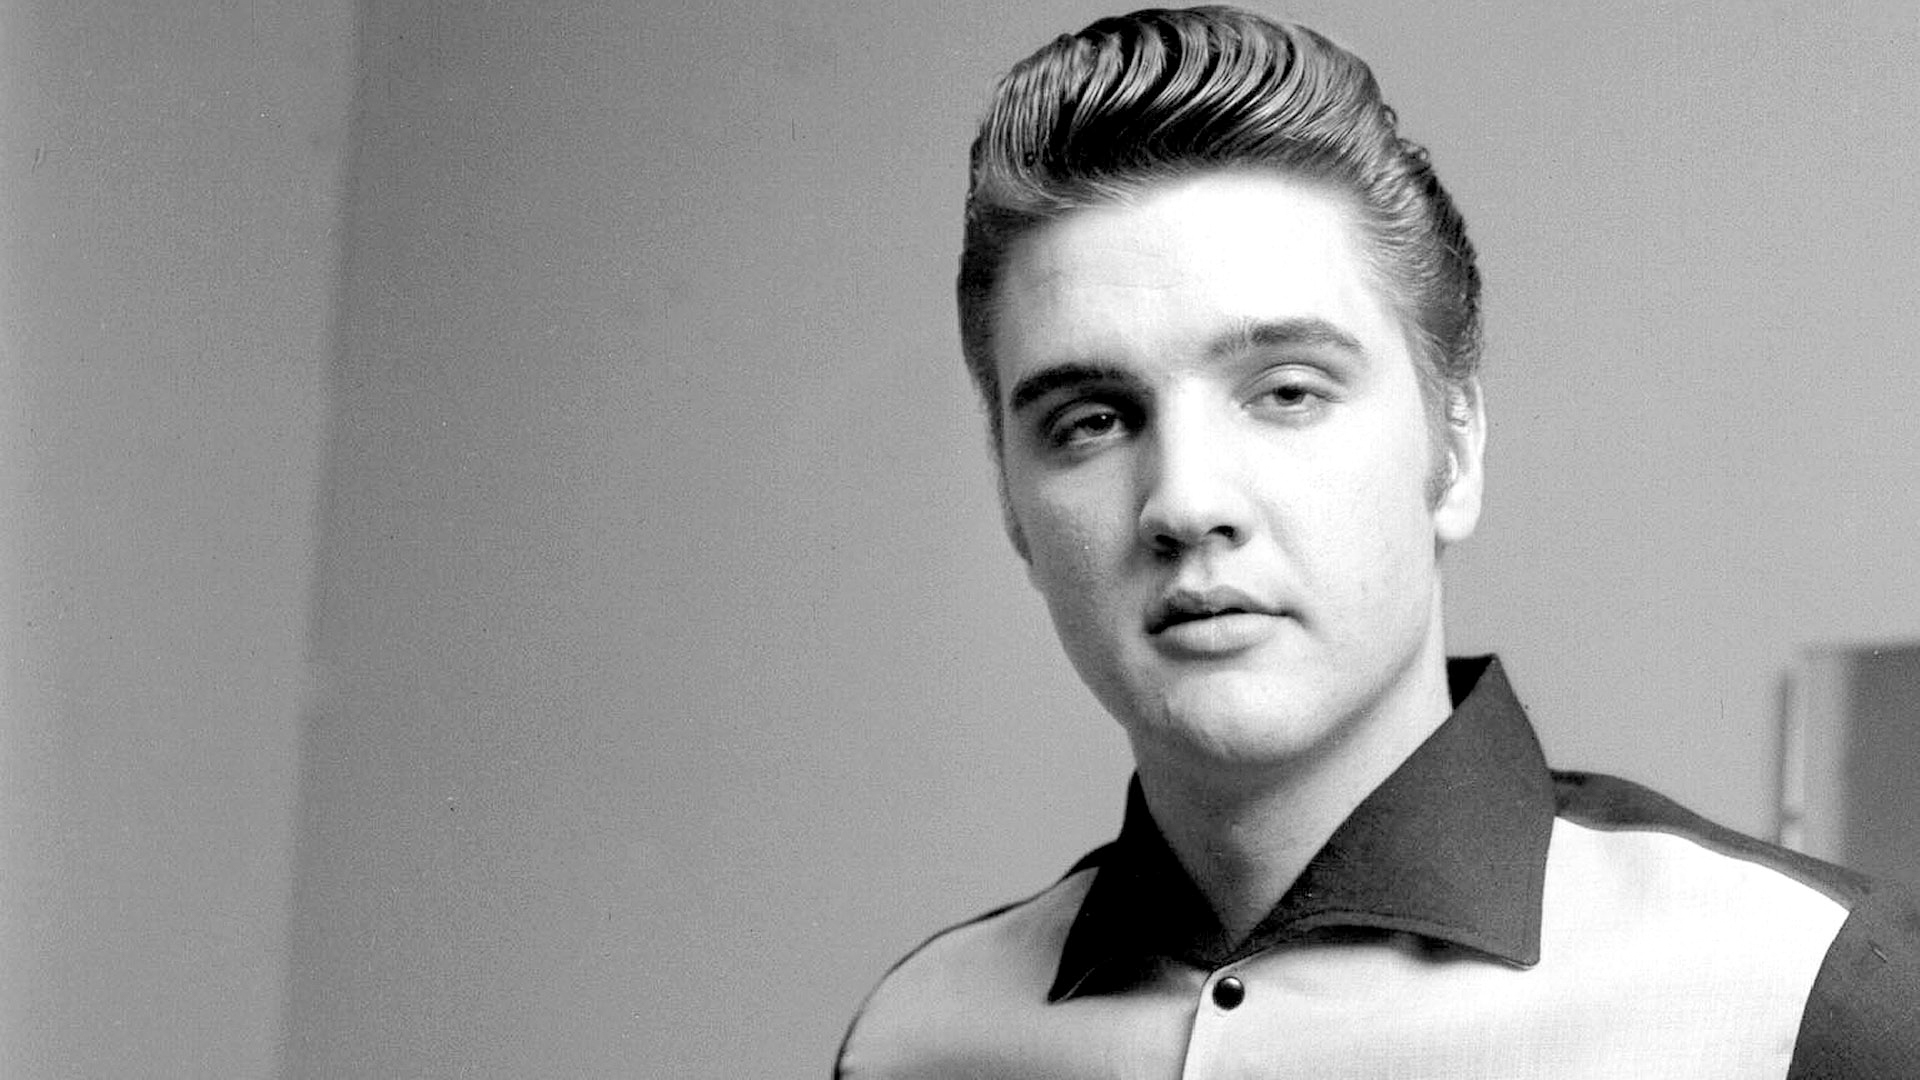 elvis presley heartbreak hotelelvis presley only you, elvis presley umbrella, elvis presley a little less conversation, elvis presley слушать, elvis presley скачать, elvis presley mp3, elvis presley my love, elvis presley blue suede shoes, elvis presley hound dog, elvis presley pretty woman, elvis presley fever, elvis presley - jailhouse rock, elvis presley love me tender, elvis presley falling in love аккорды, elvis presley rock and roll, elvis presley falling in love скачать, elvis presley falling in love текст, elvis presley my way, elvis presley heartbreak hotel, elvis presley unchained melody